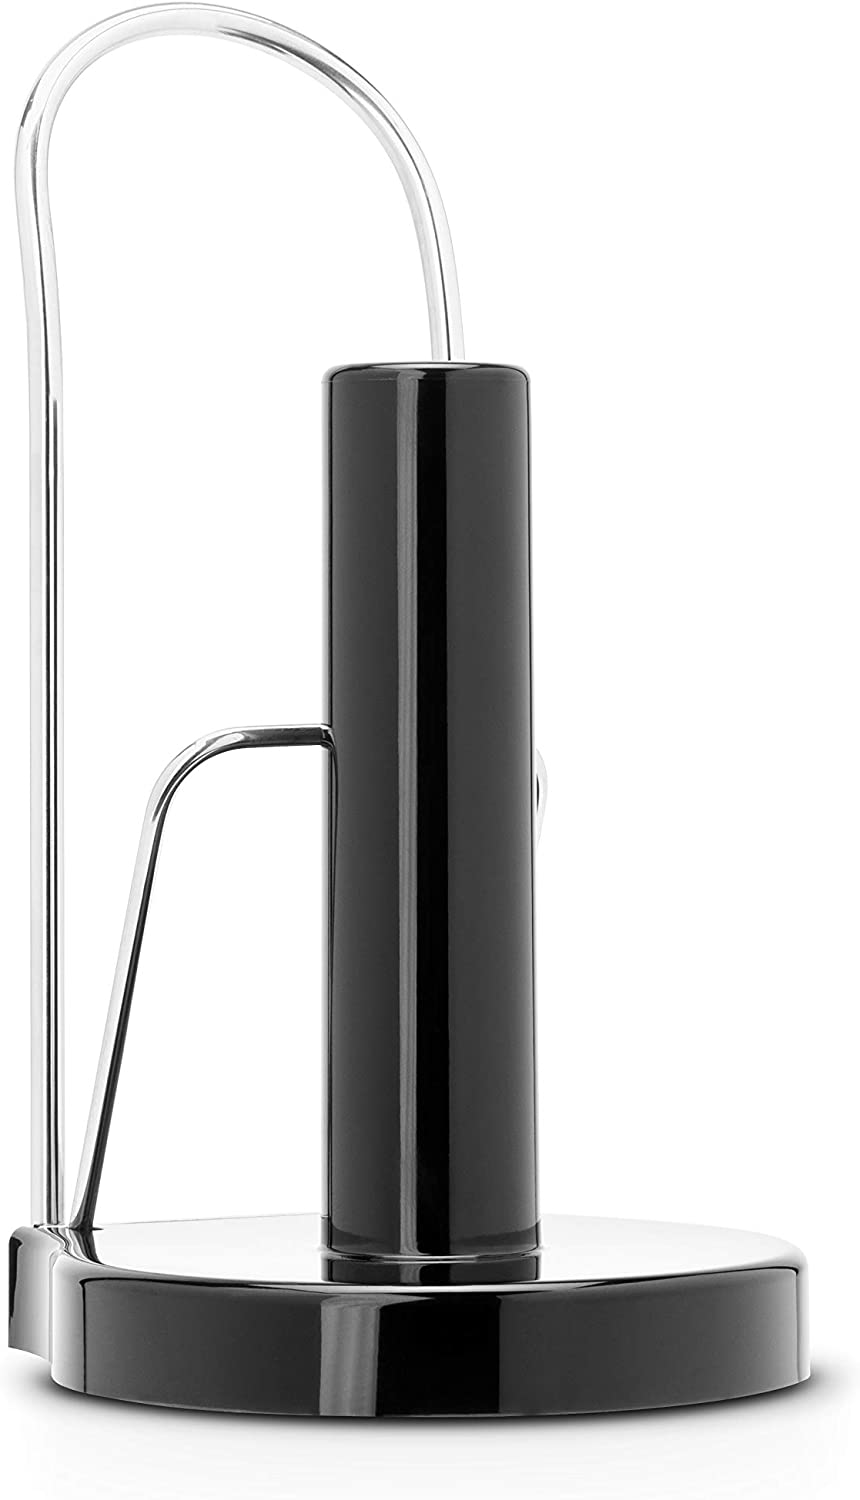 Brabantia Kitchen Roll Holder – Free Standing - Black